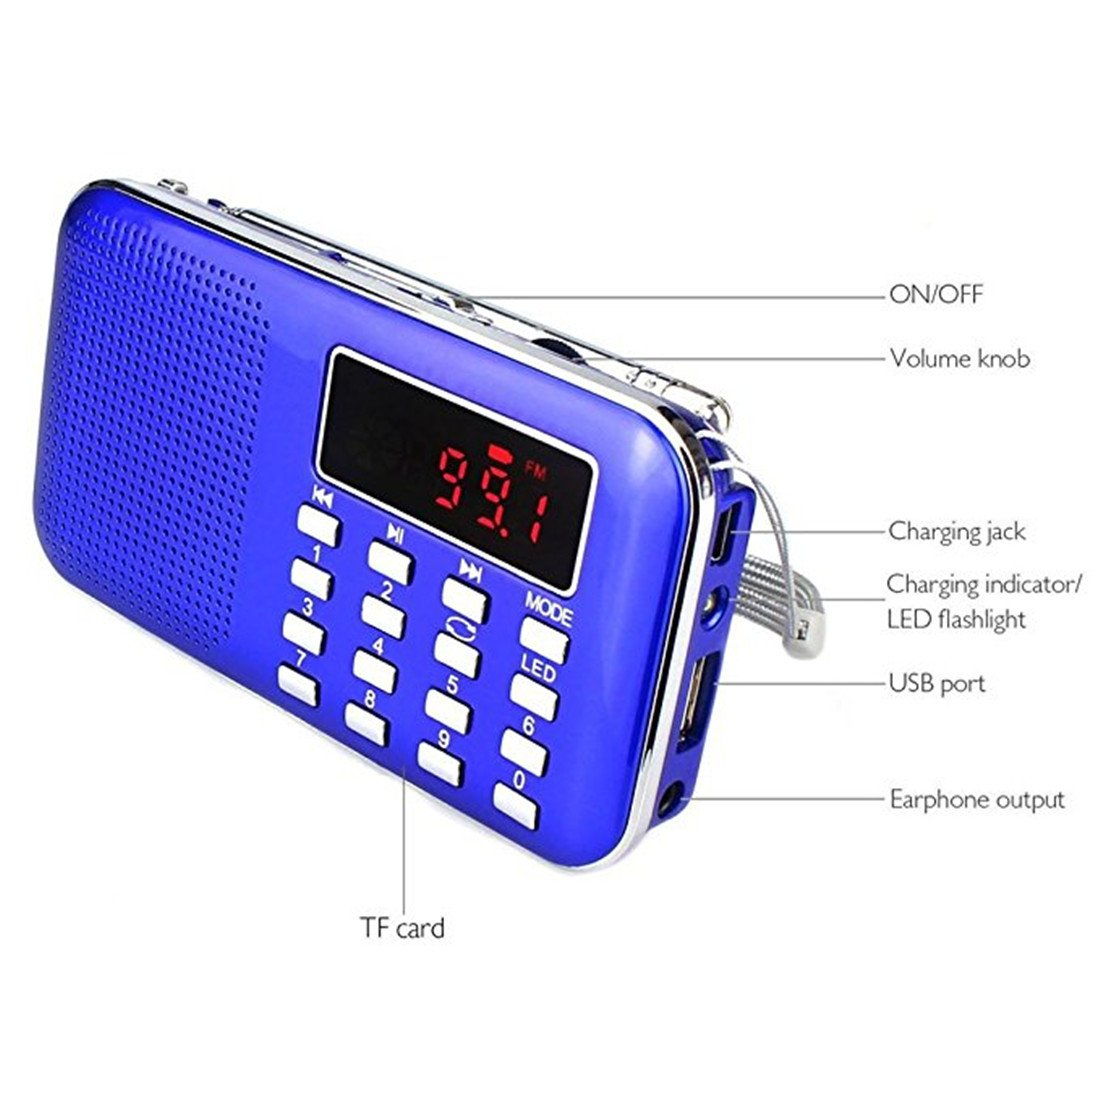 BeiLan Mini Digital AM FM Pocket Radio Portable Speaker Mp3 Music Player Stereo Sound Support TF Card USB Disk with LED Screen Display and Emergency Flashlight Function (Blue) by BeiLan (Image #5)